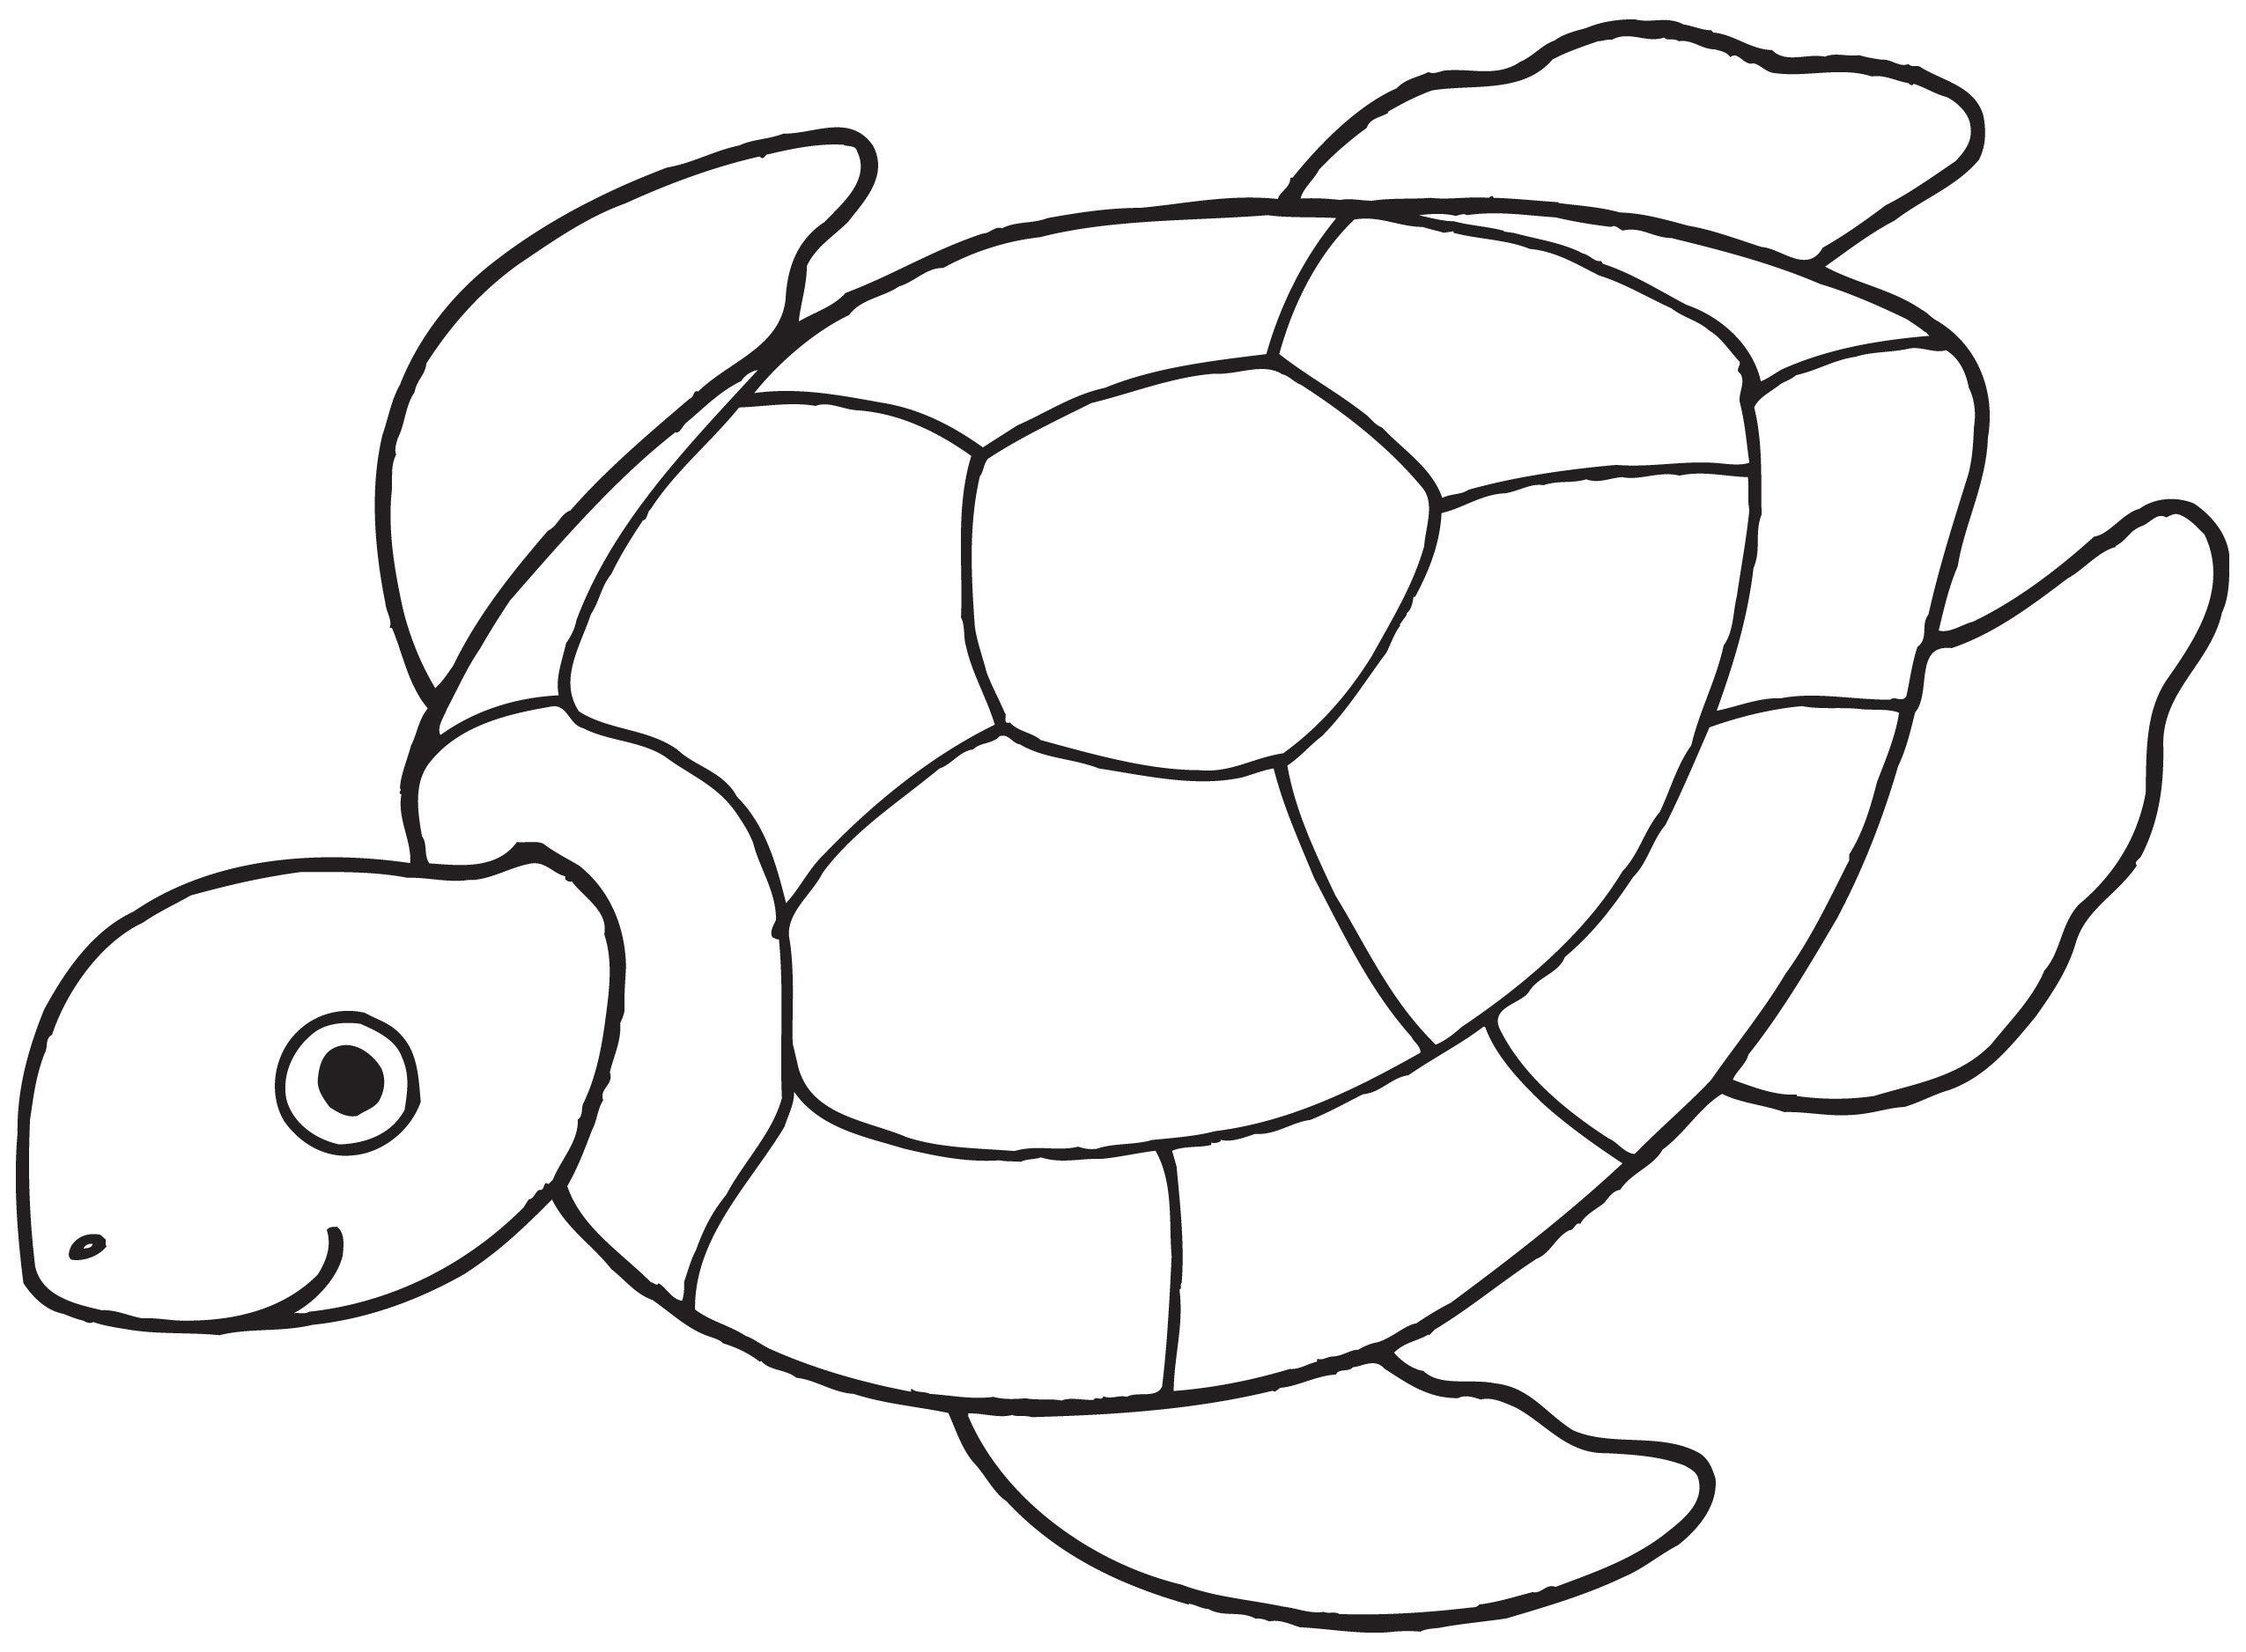 Turtle Dove clipart printable #10